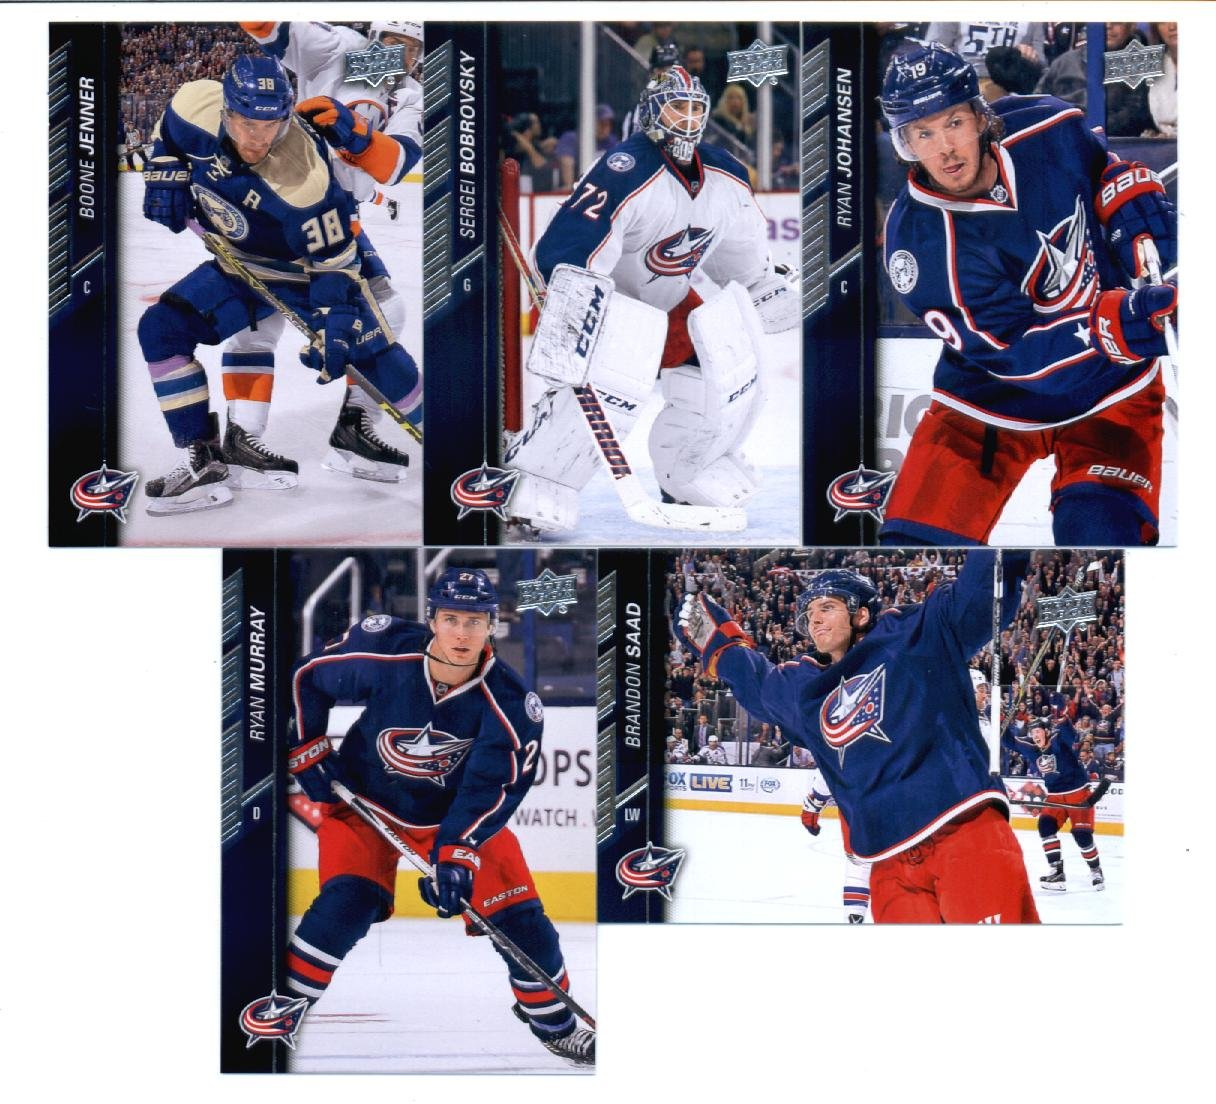 2015-16 Upper Deck Columbus Blue Jackets Hockey Master Team Set of 12 Cards: Brandon Dubinsky(#50), Cam Atkinson(#51), David Savard(#52), Jack Johnson(#53), Matt Calvert(#54), Scott Hartnell(#55), Nick Foligno(#56), Boone Jenner(#306), Brandon Saad(#307), Sergei Bobrovsky(#308), Ryan